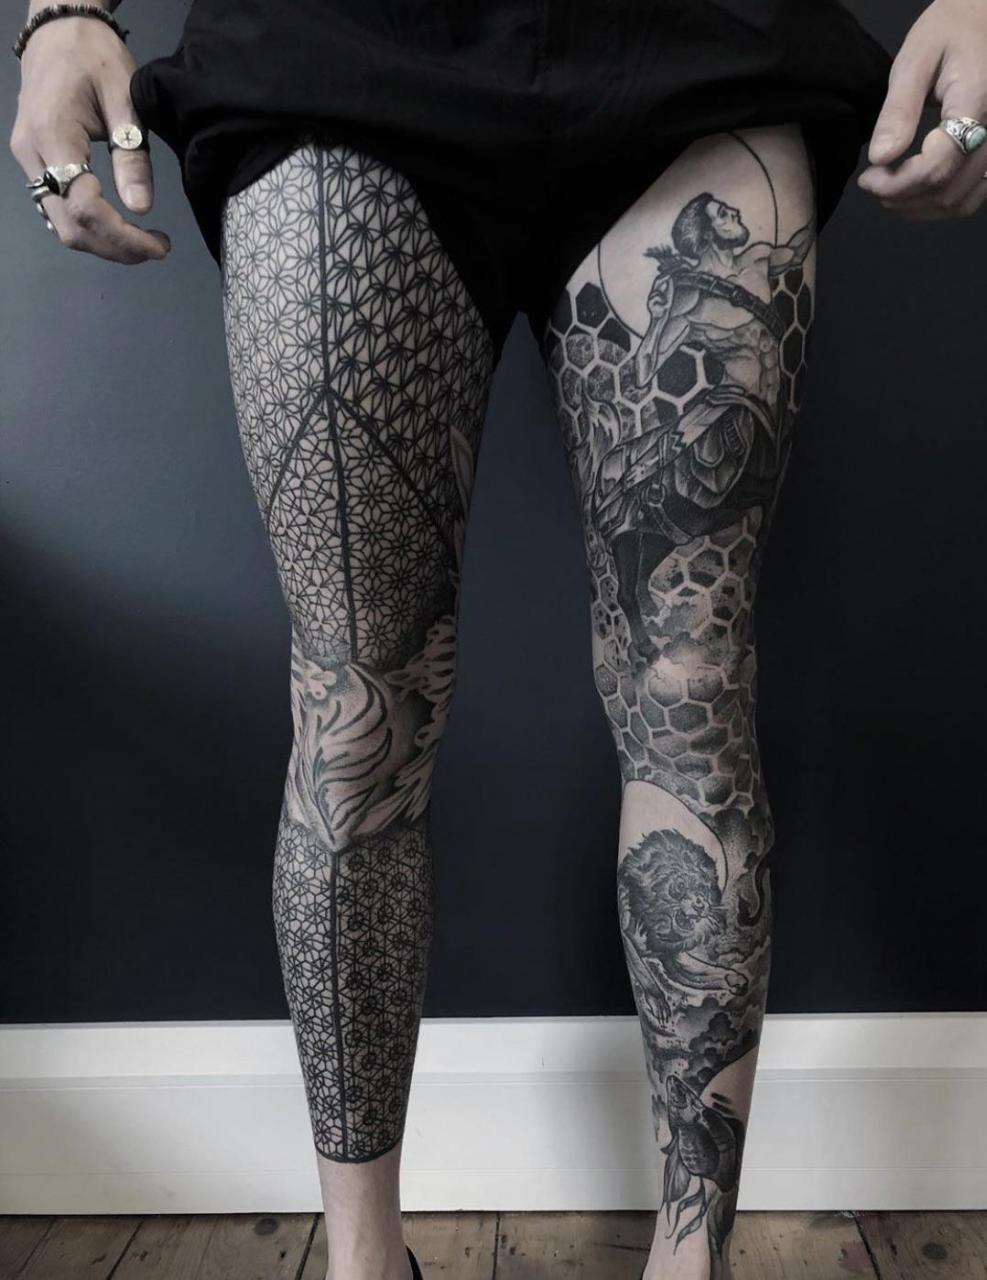 Both legs healed from 2 years ago, done at The Hidden Tannery, Brighton, UK.